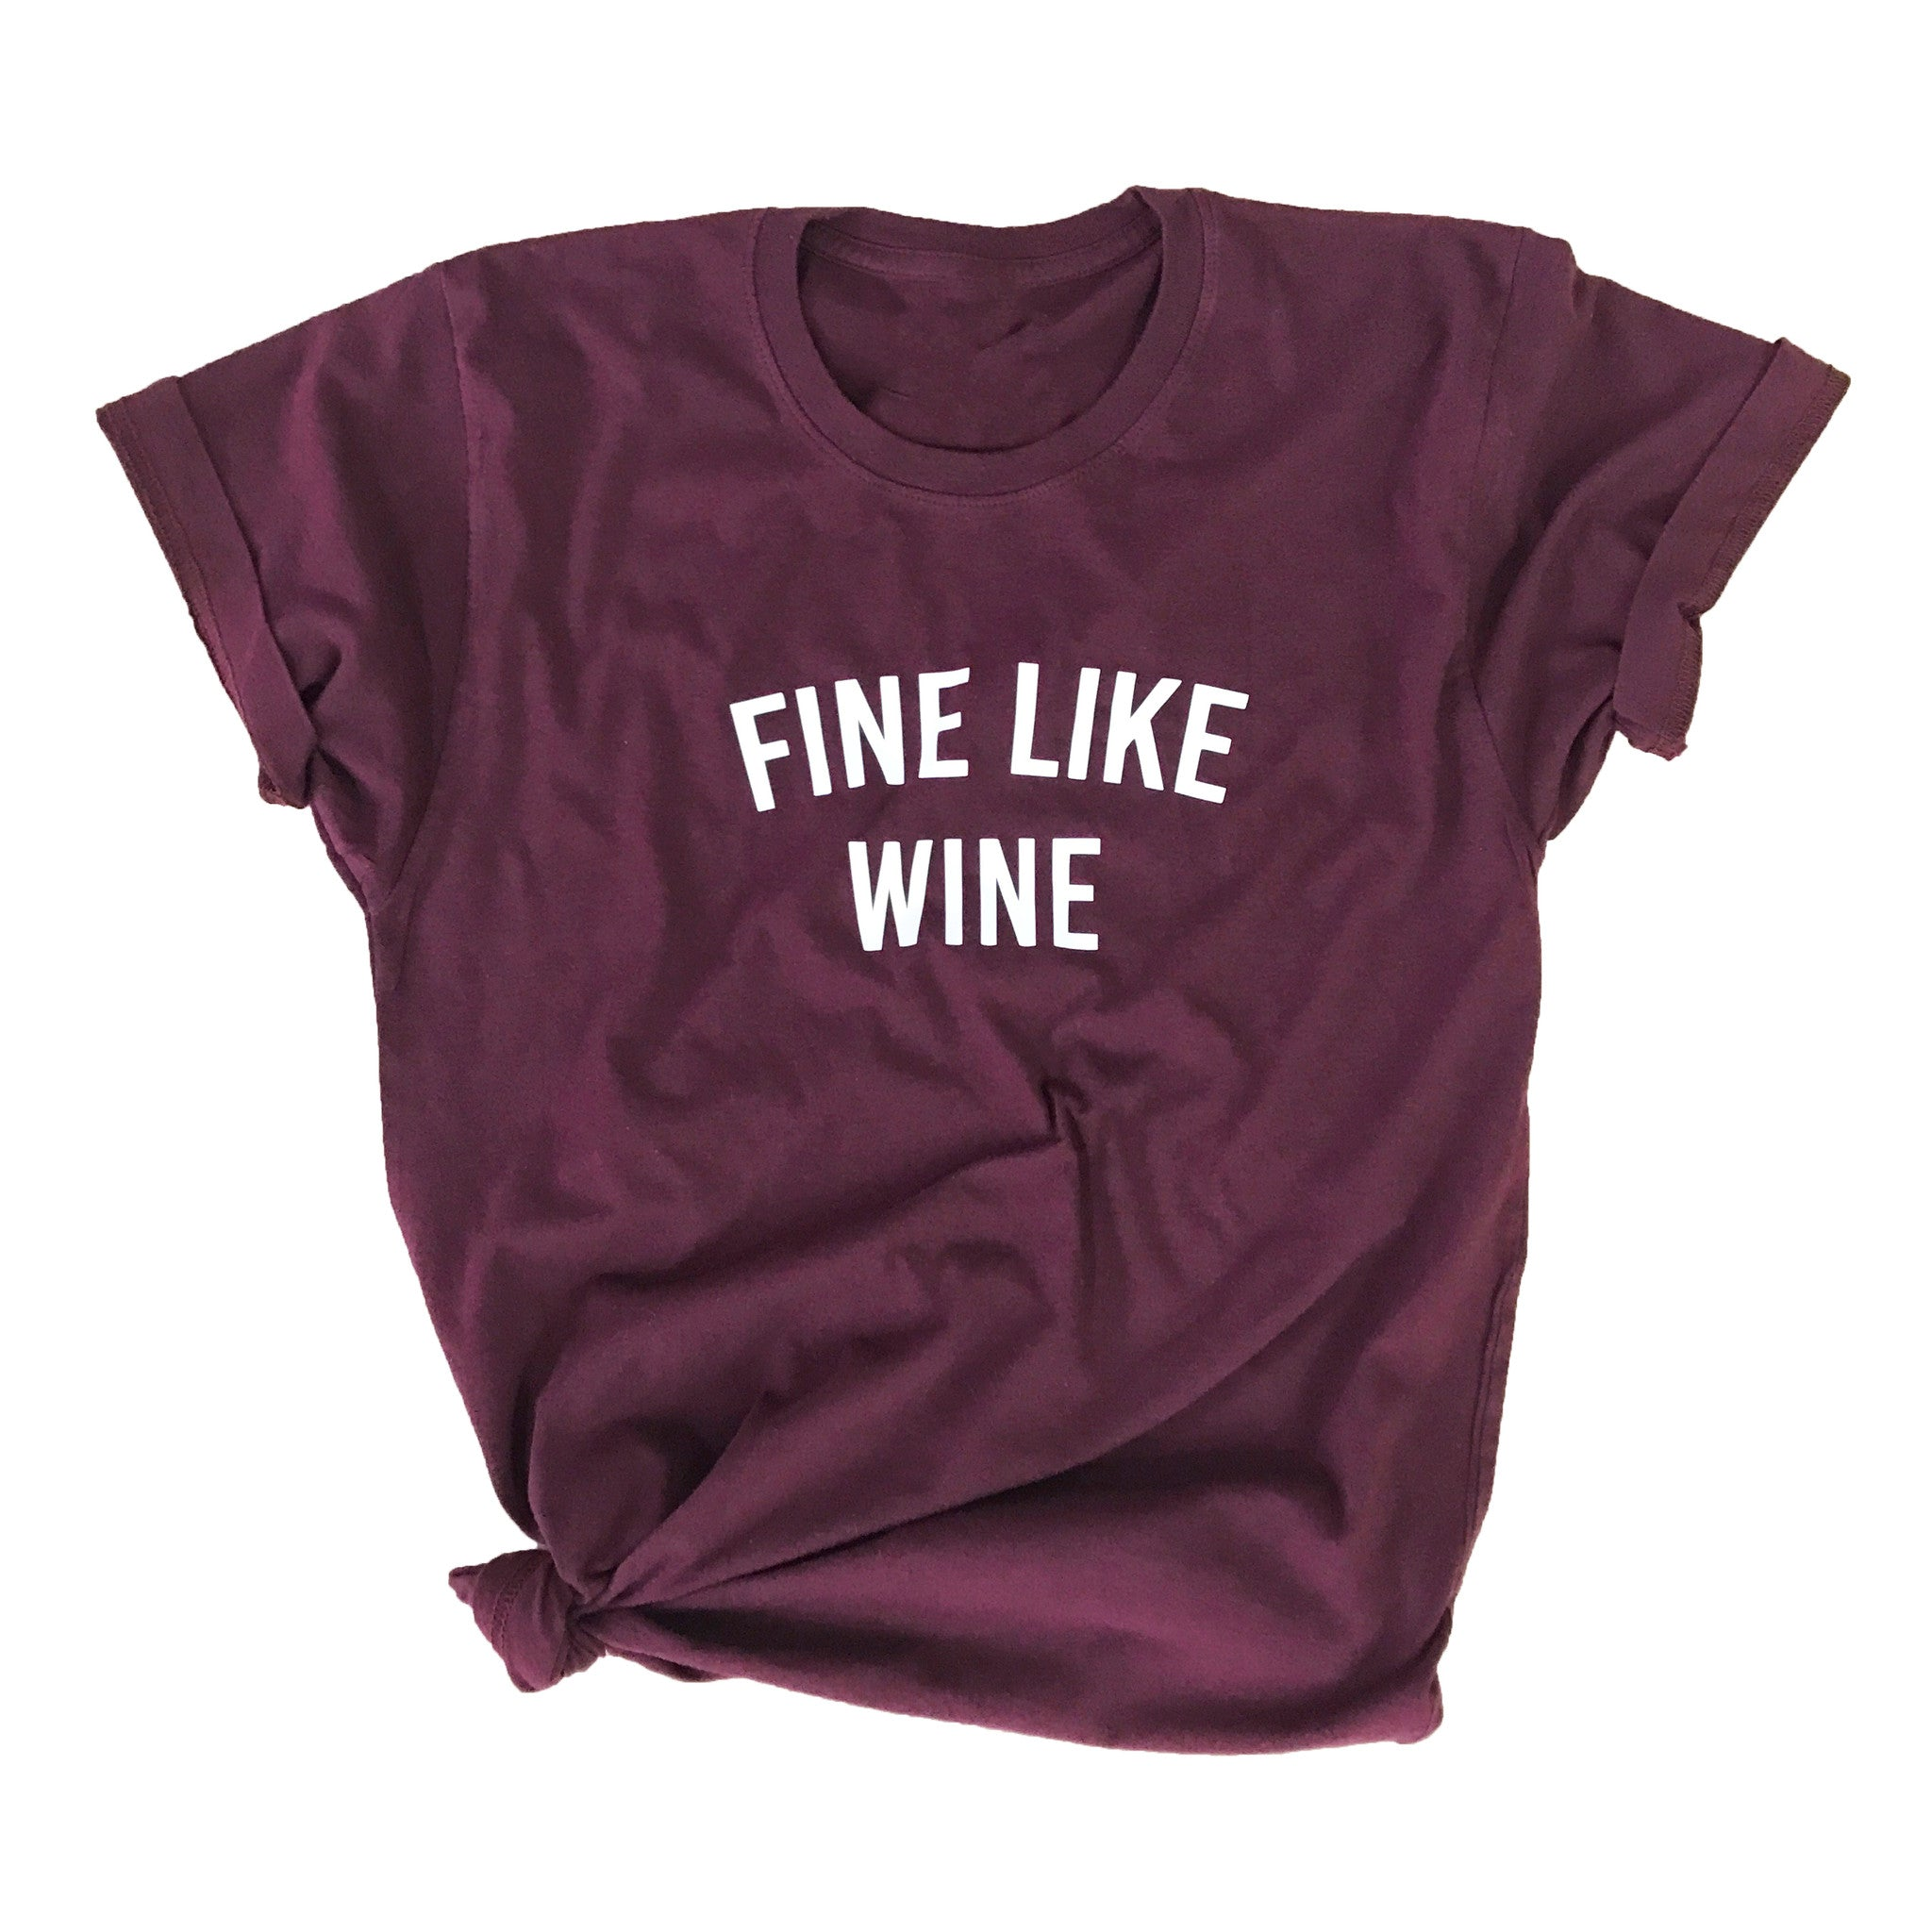 FINE LIKE WINE Tee (Adult)